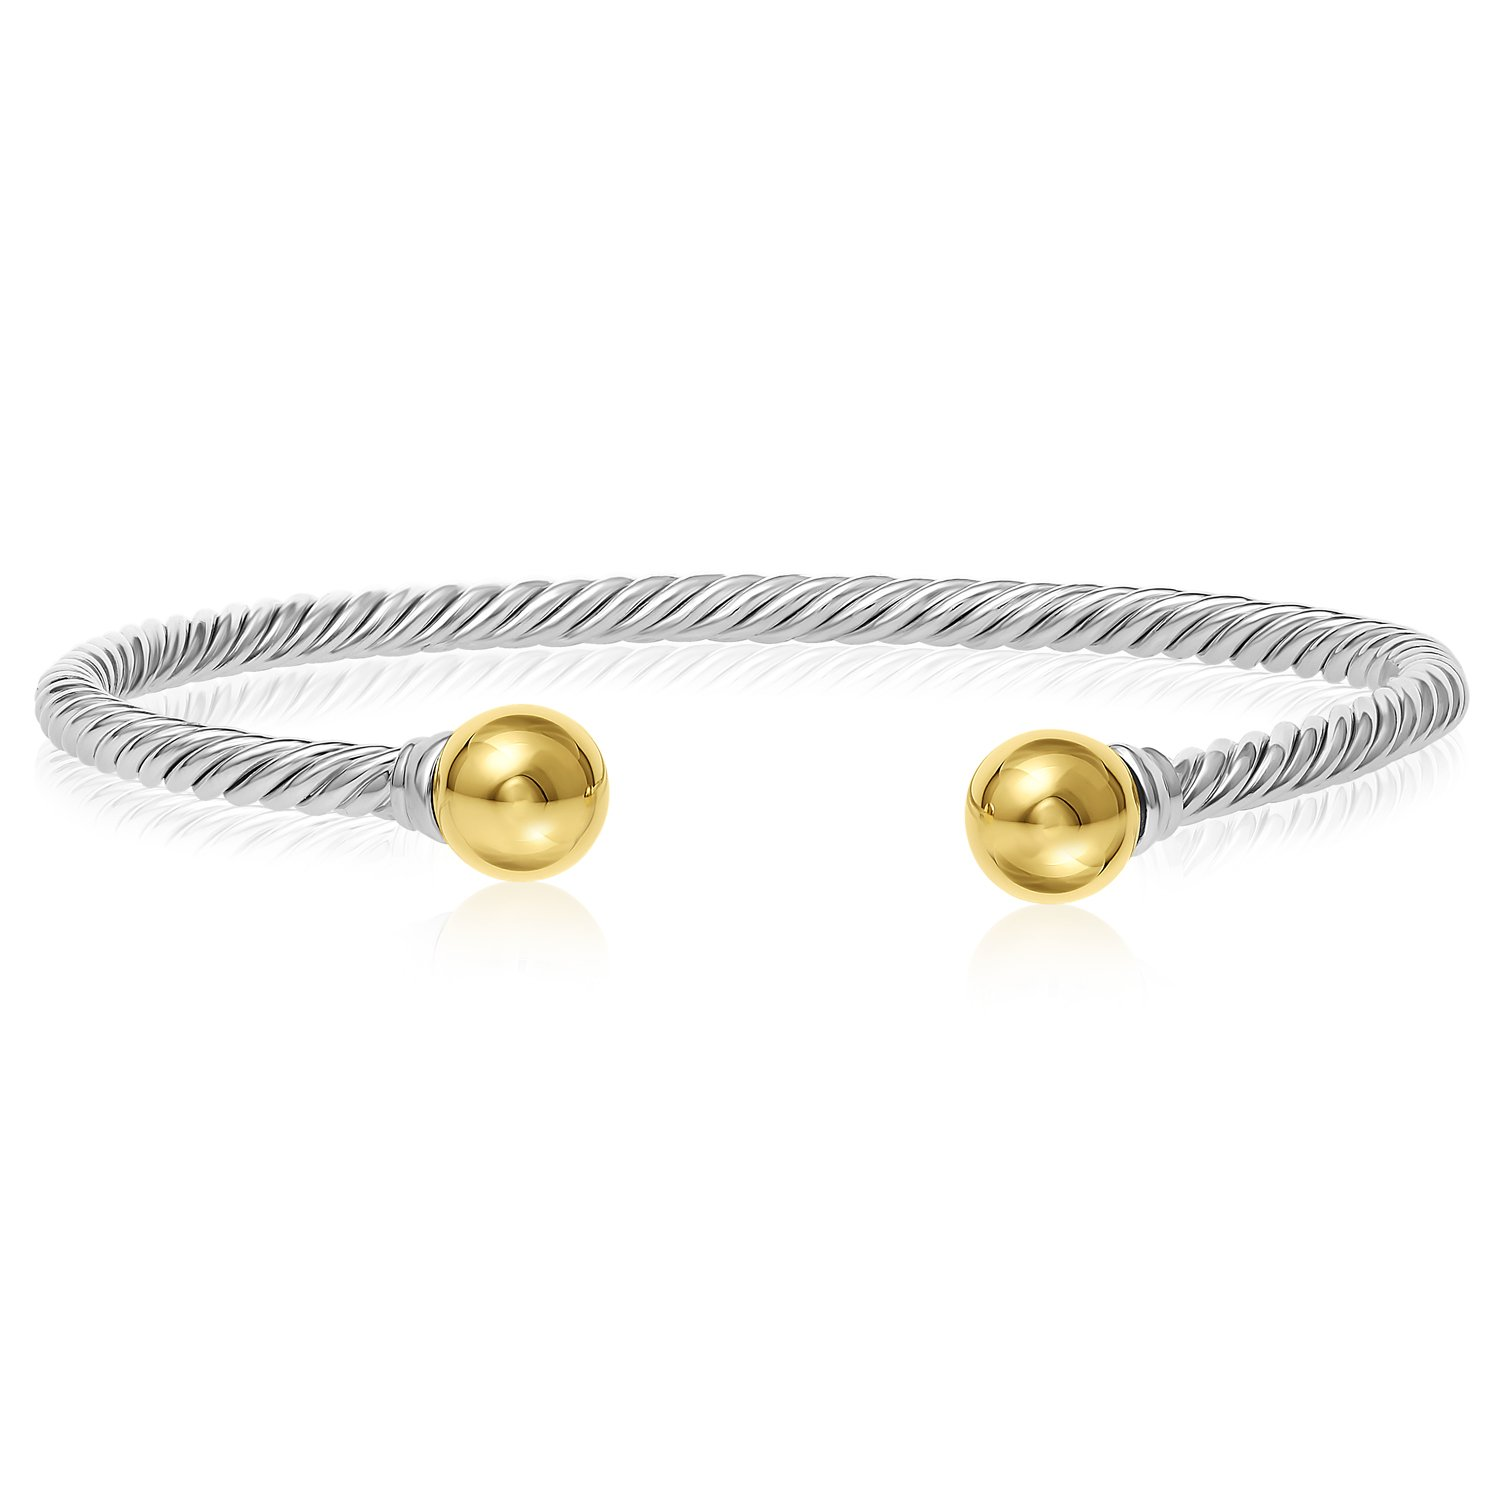 Unique Royal Jewelry Solid 925 Twisted Black Antique Finish Sterling Silver and 14k Solid Gold 2-Ball Cuff Bracelet (Size 7)